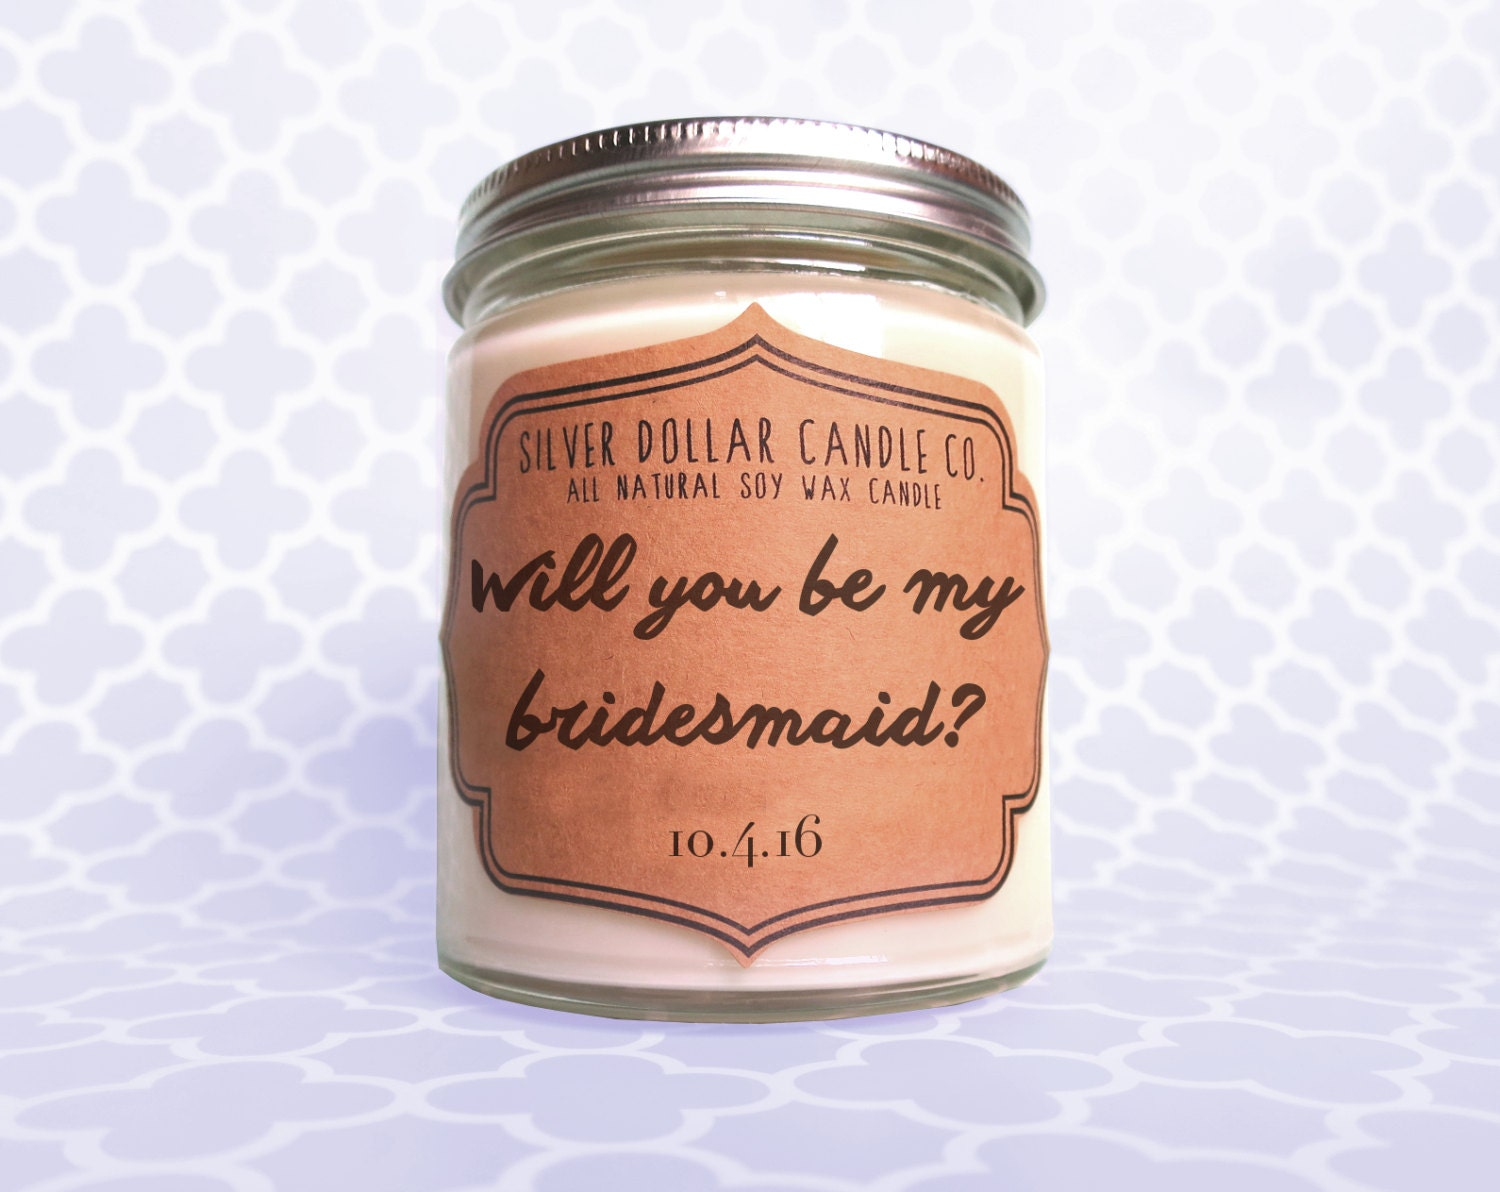 Bridesmaid Candle Will You Be My By Silverdollarcandleco